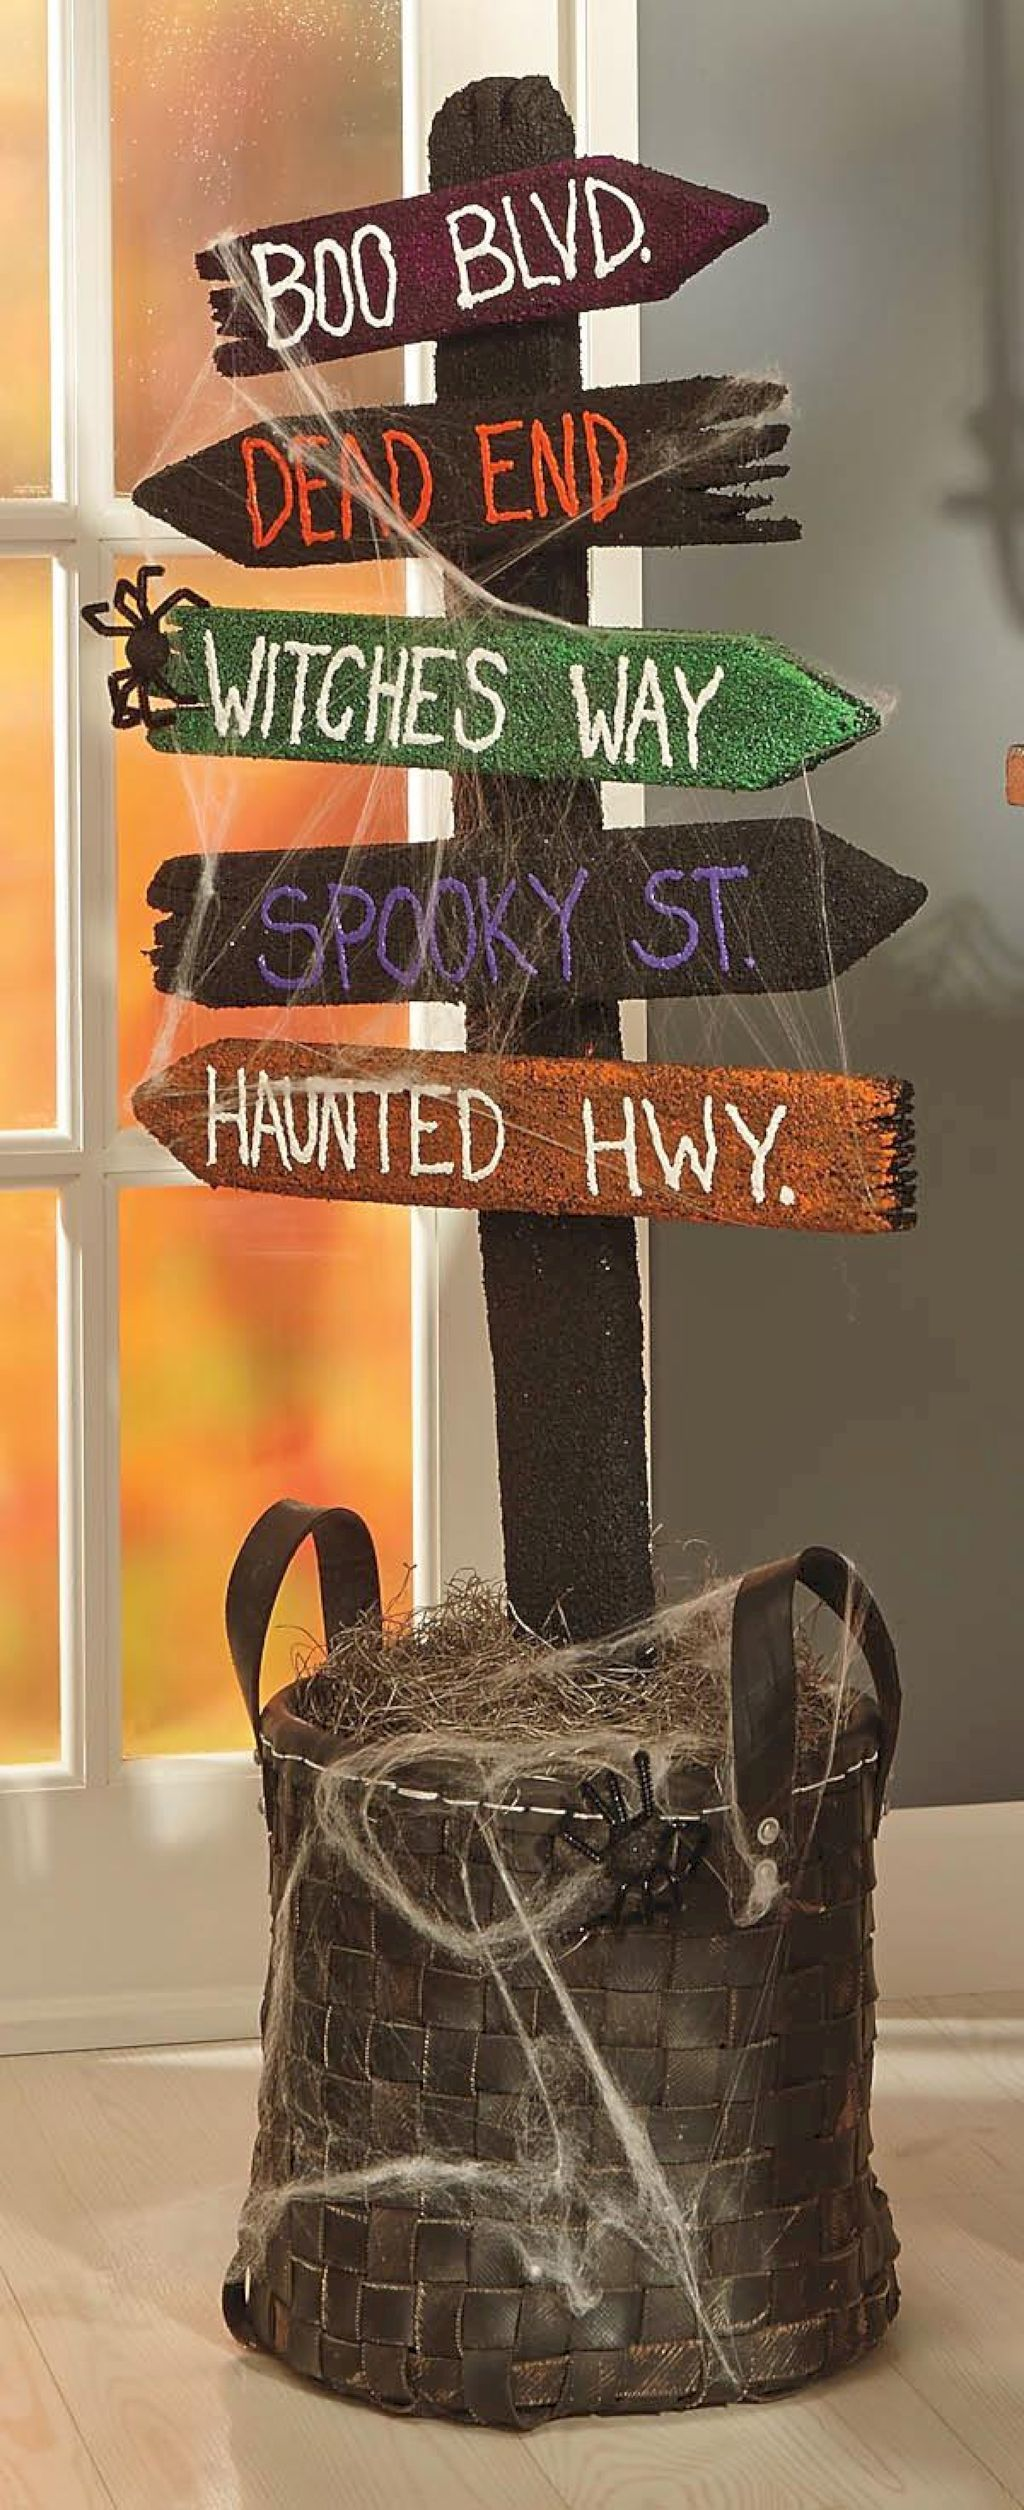 25 Wicked Halloween Home Decor Ideas Wicked, Halloween ideas and